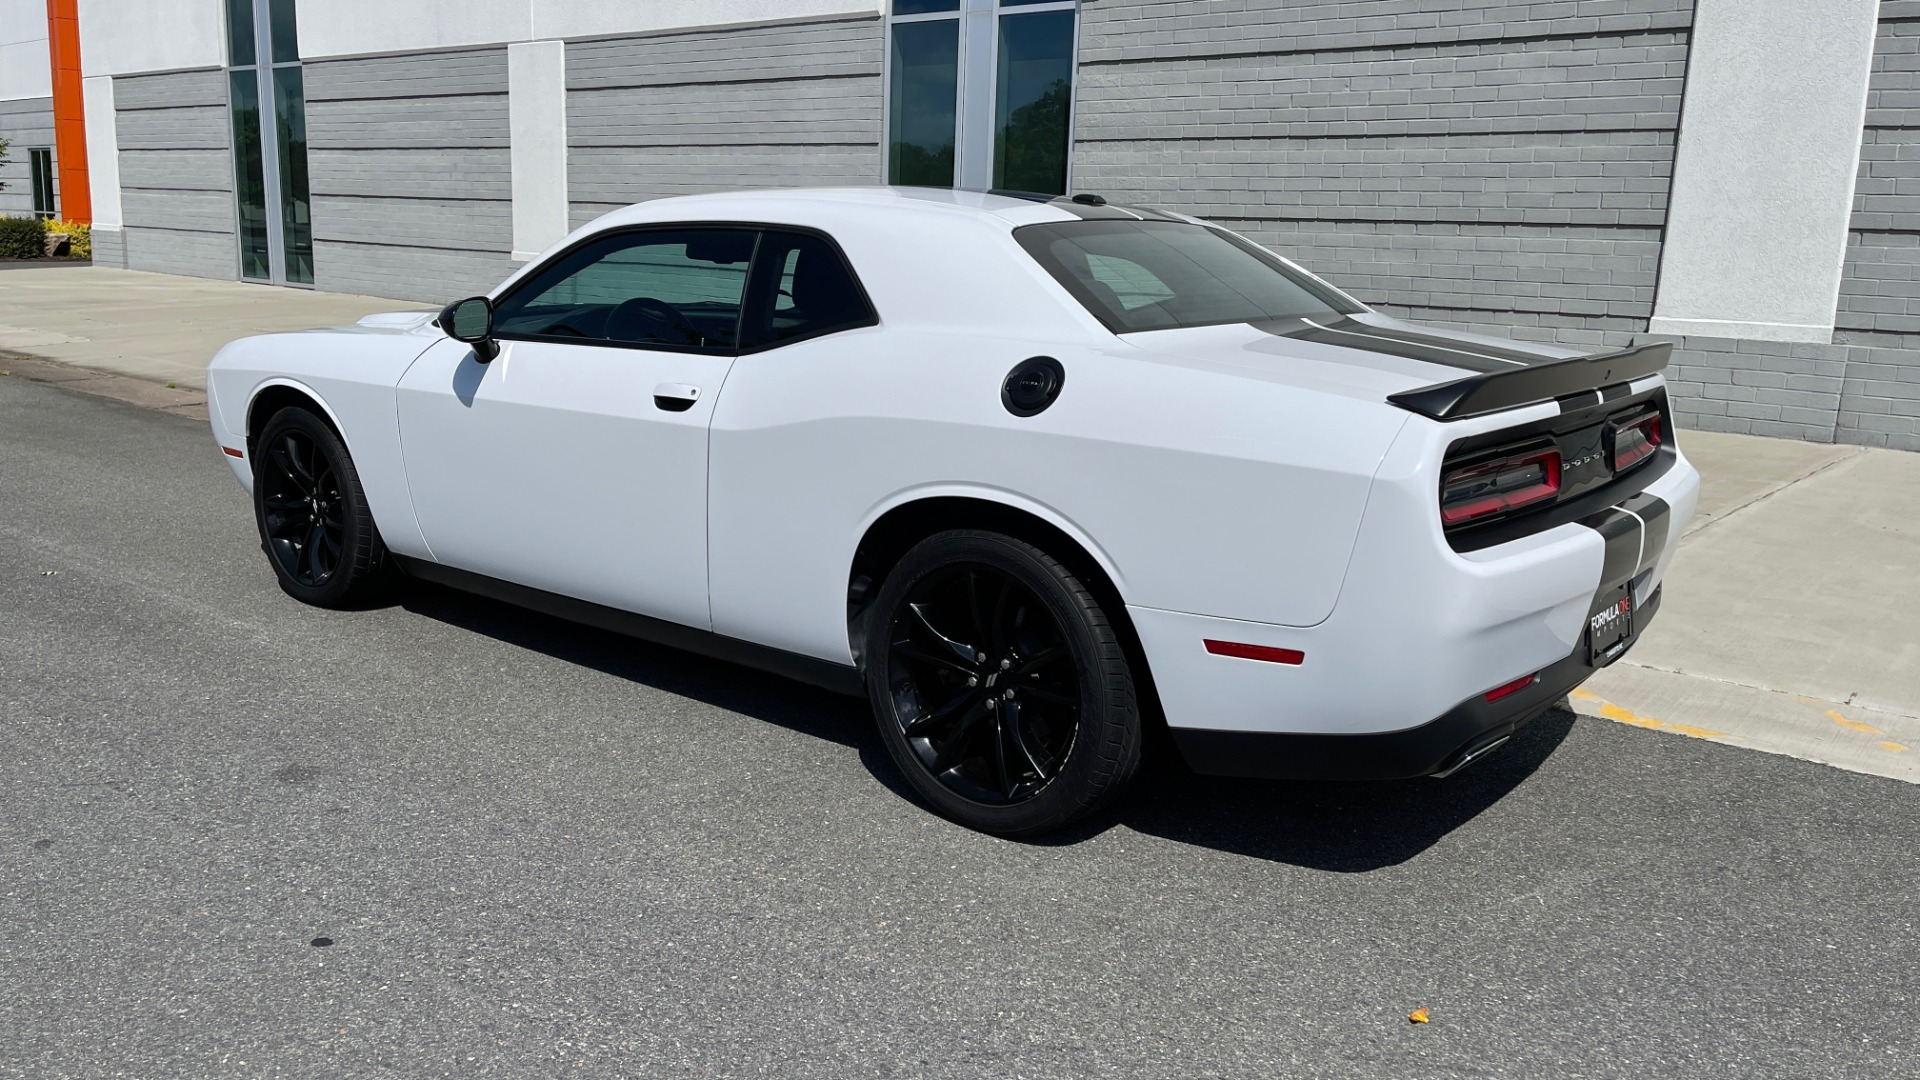 Used 2018 Dodge CHALLENGER SXT COUPE / BLACKTOP PKG / 3.6L V6 / 8-SPD AUTO / REARVIEW for sale $31,995 at Formula Imports in Charlotte NC 28227 5